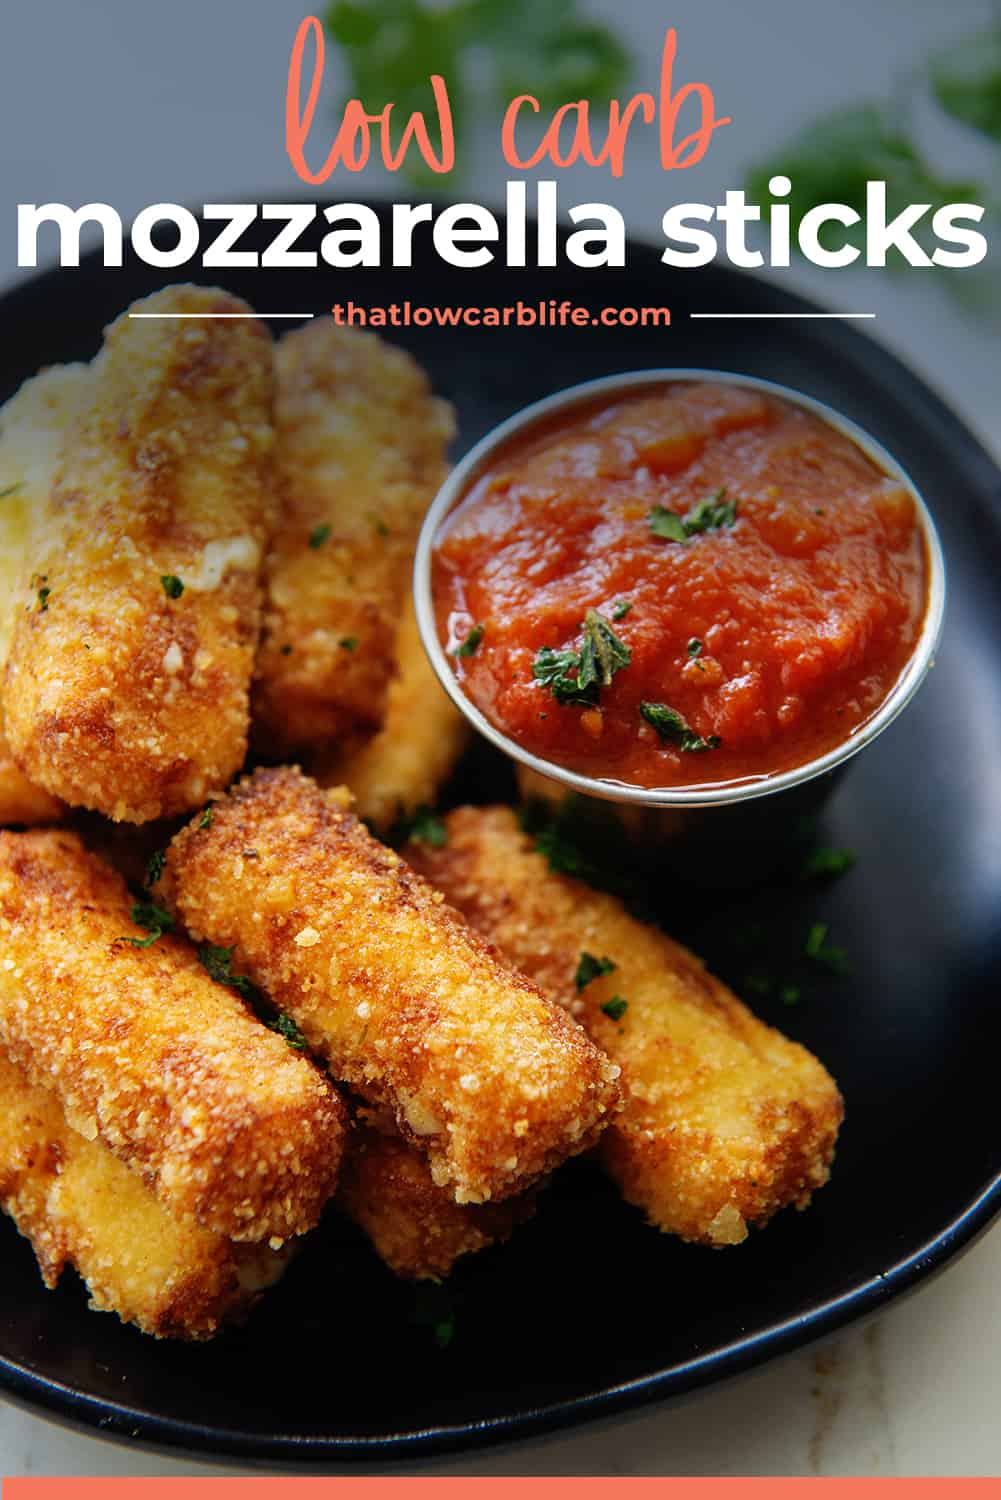 low carb mozzarella sticks on black plate with text for Pinterest.